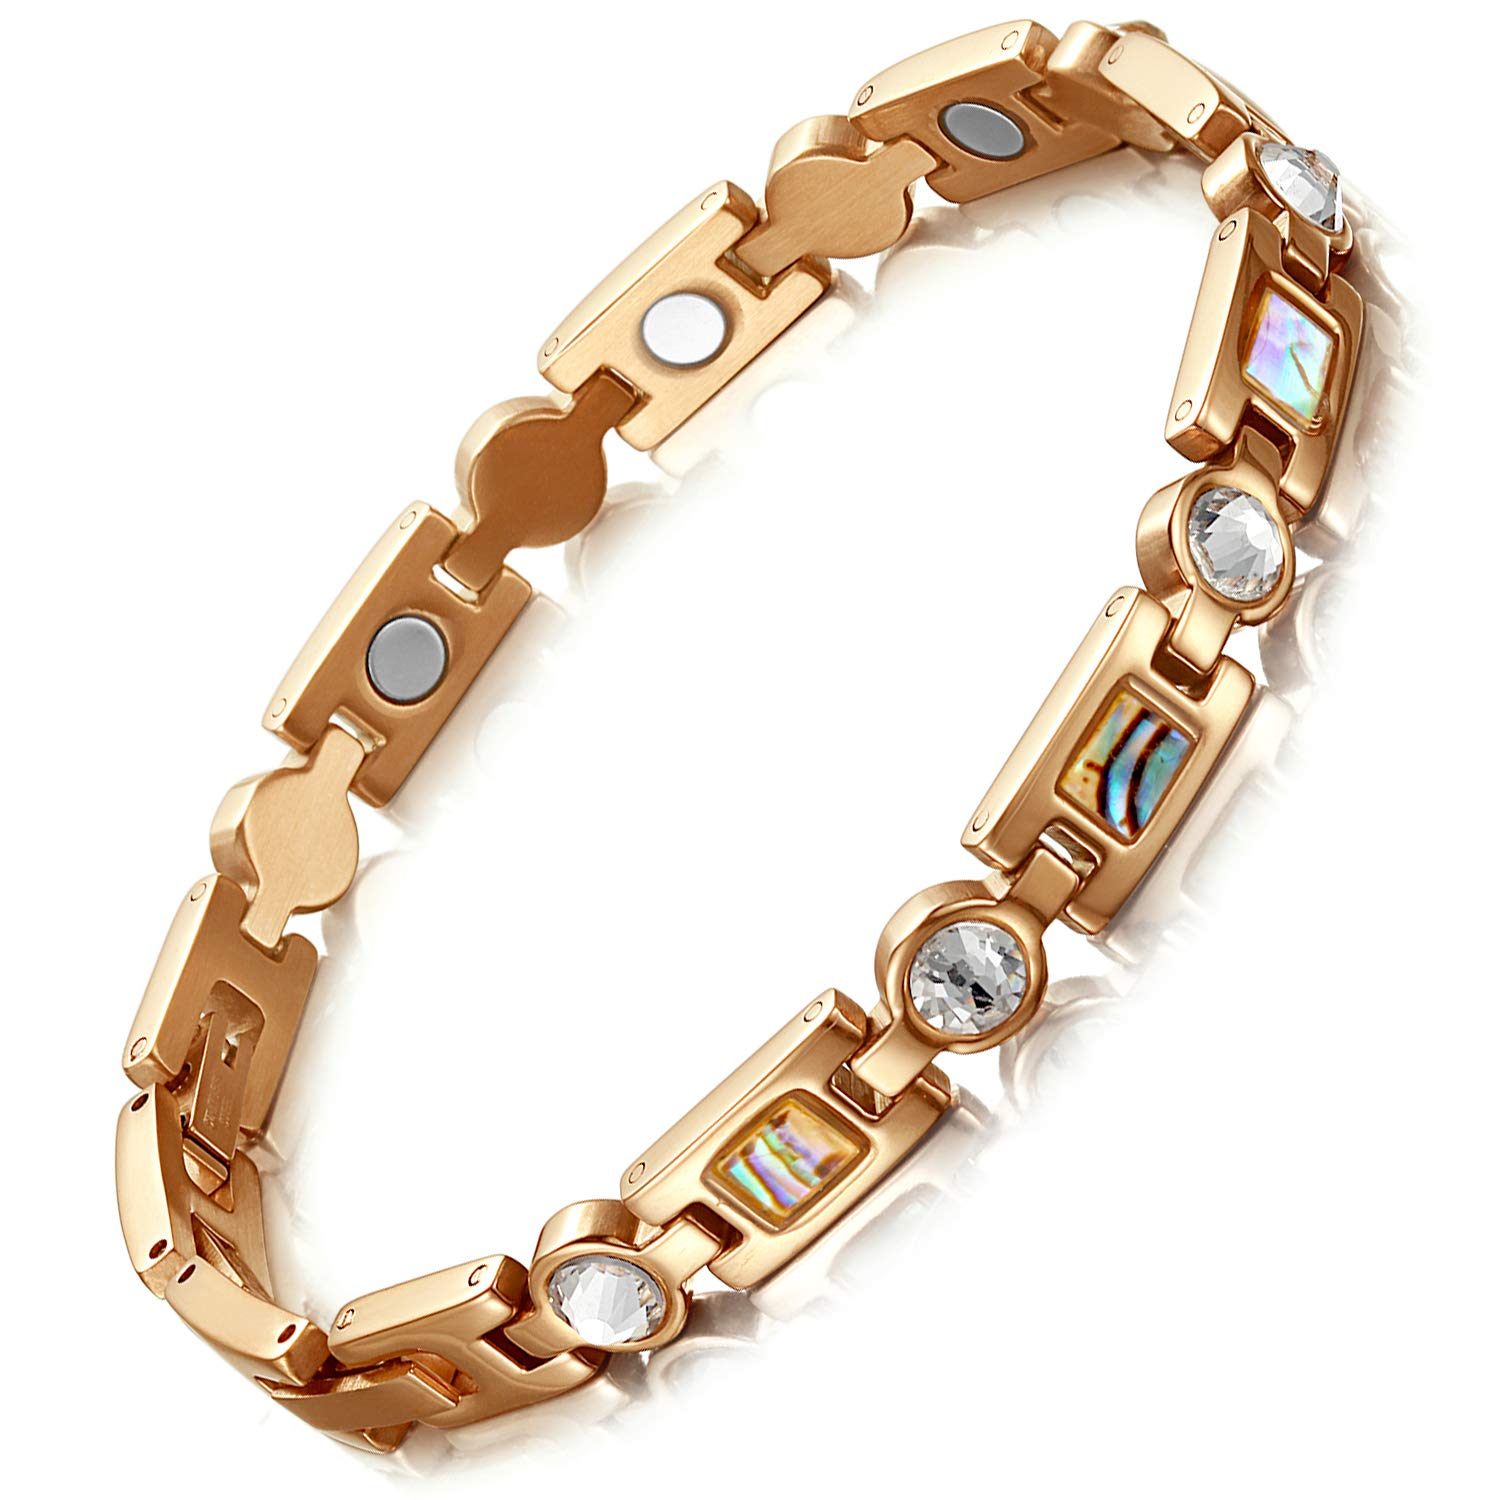 Rainso Titanium Stainless Steel Rhinestone Golf Magnetic Therapy Bracelets for Women with 3 Smart Buckle (Rose Gold)